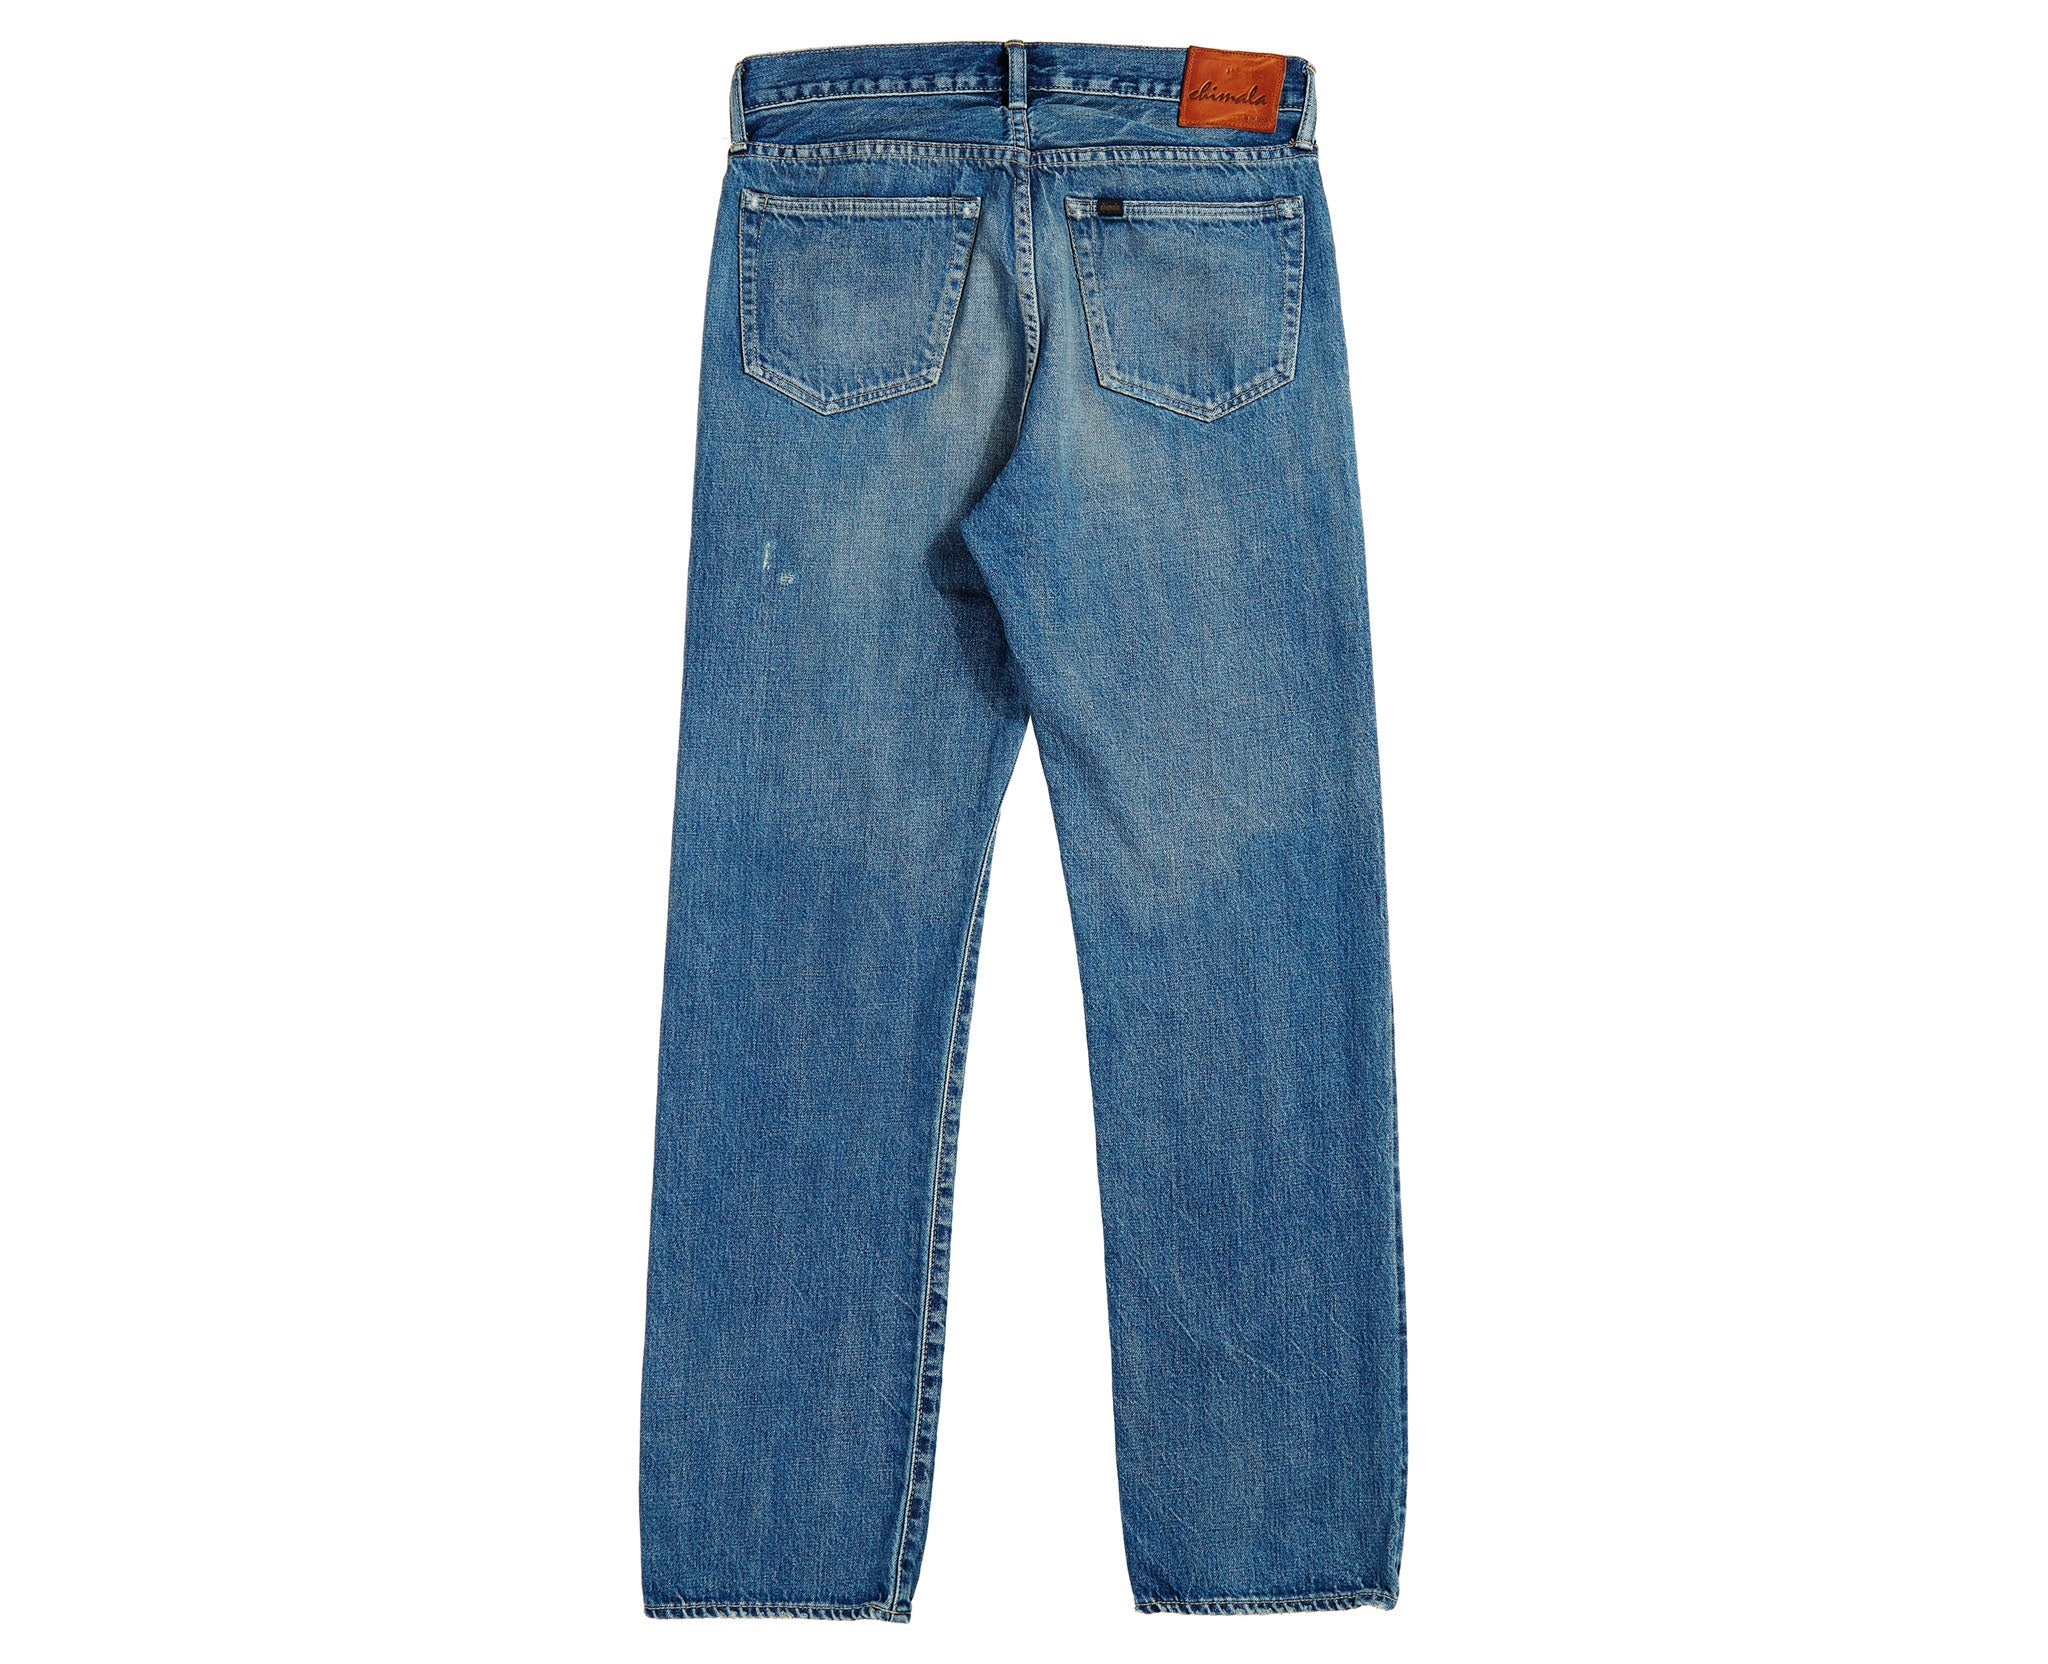 Men's Narrow Tapered Cut Jean